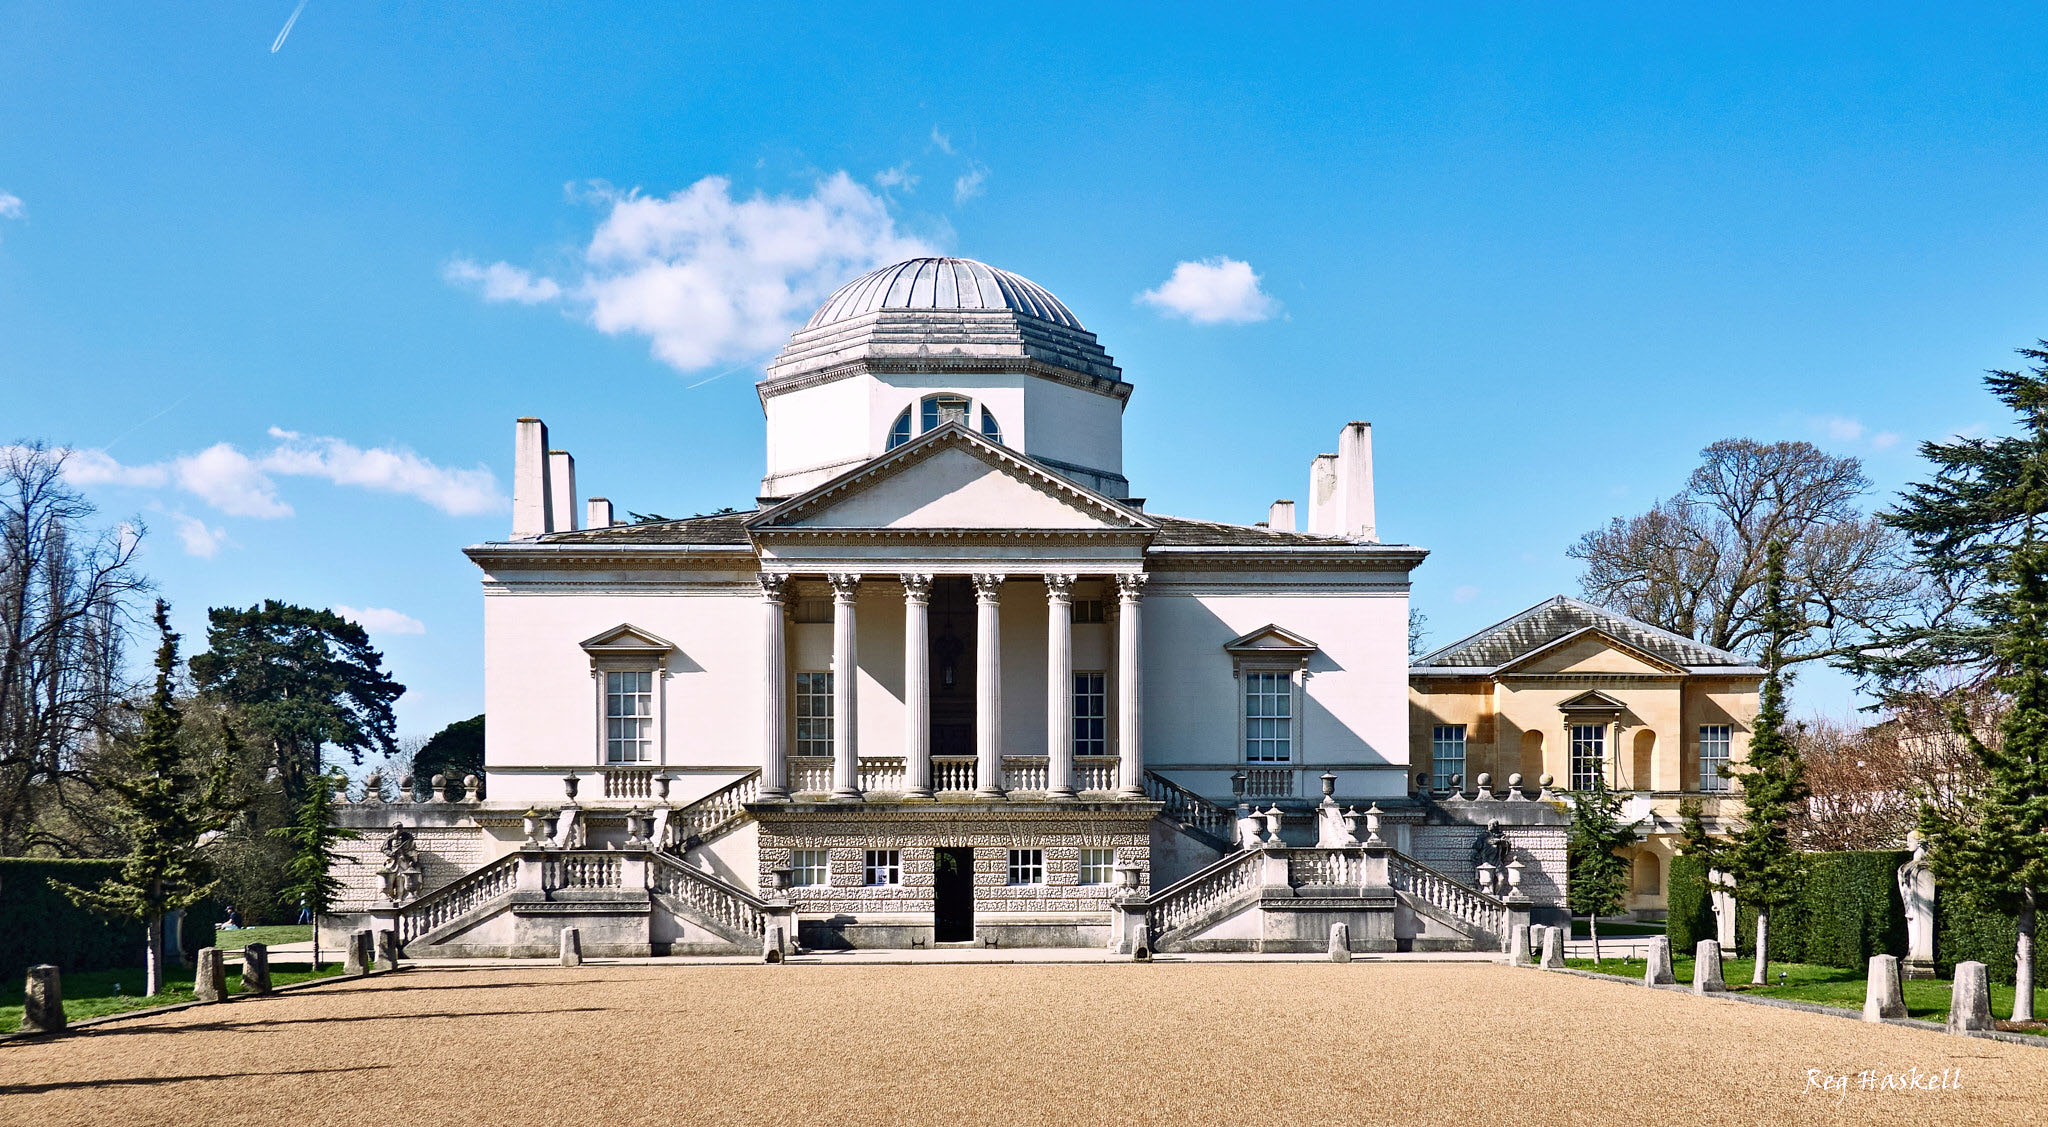 Chiswick House, London by Reg Haskell.jpg